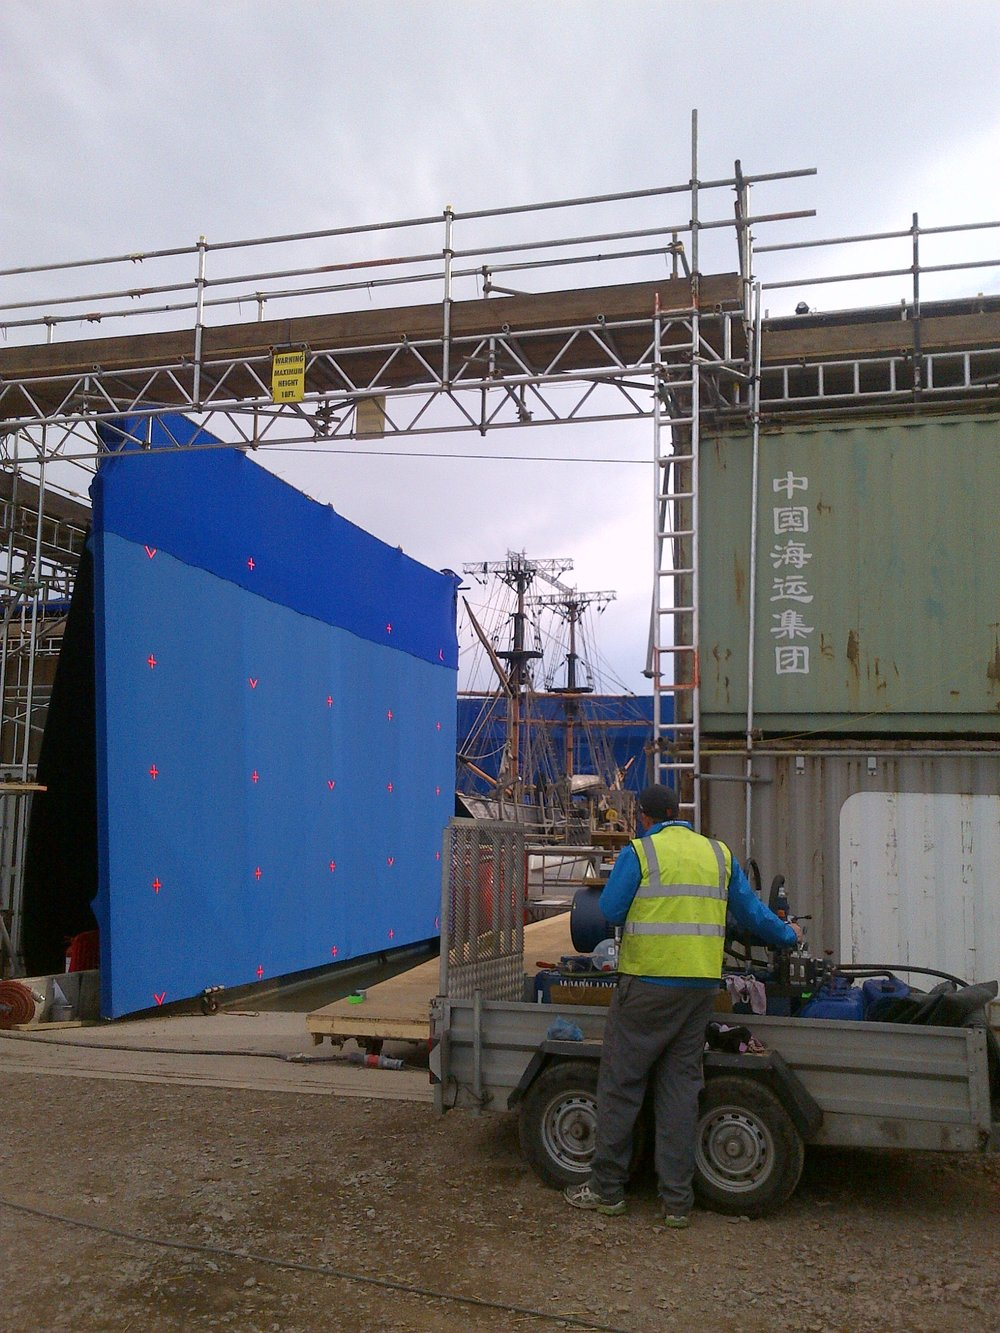 blue screen filming tall ship model in a tank